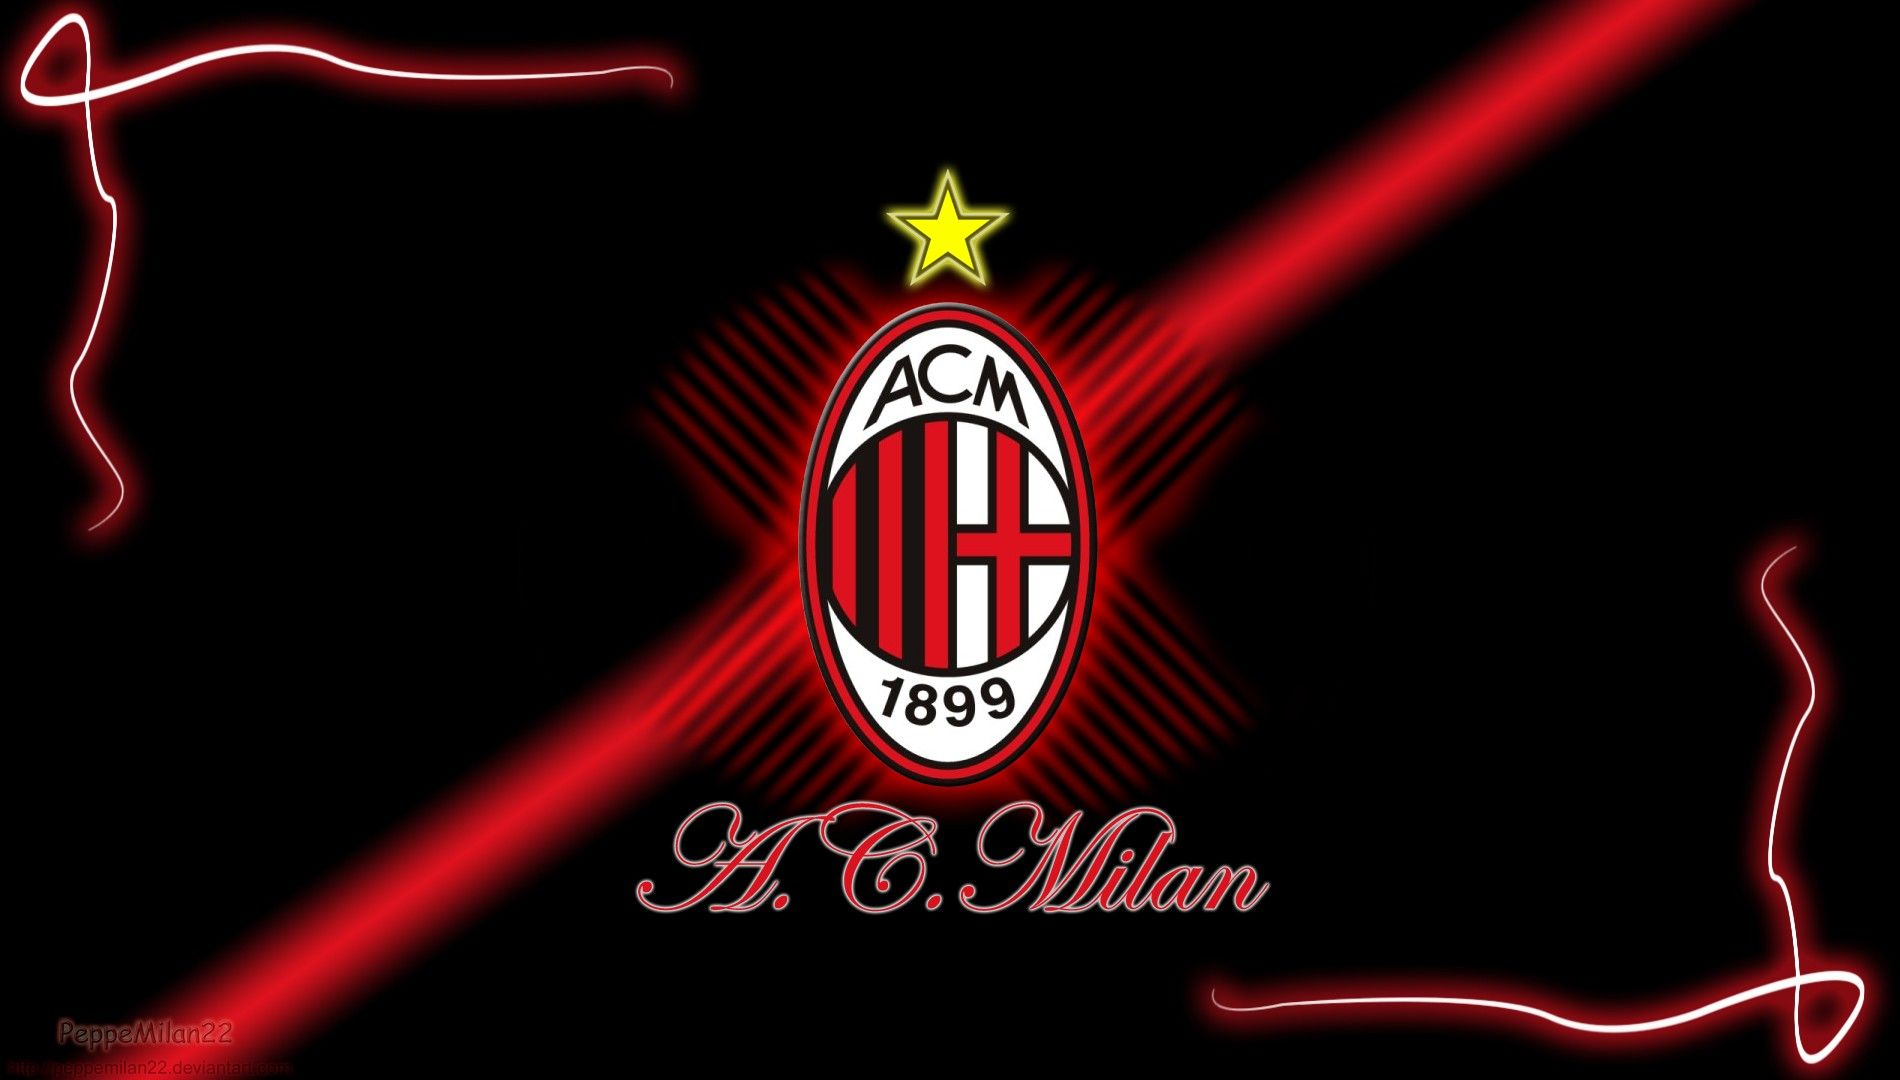 Hd wallpaper ac milan - Ac Milan Football Logo Black Background Hd Wallpaper Widescreen Desktop Pc